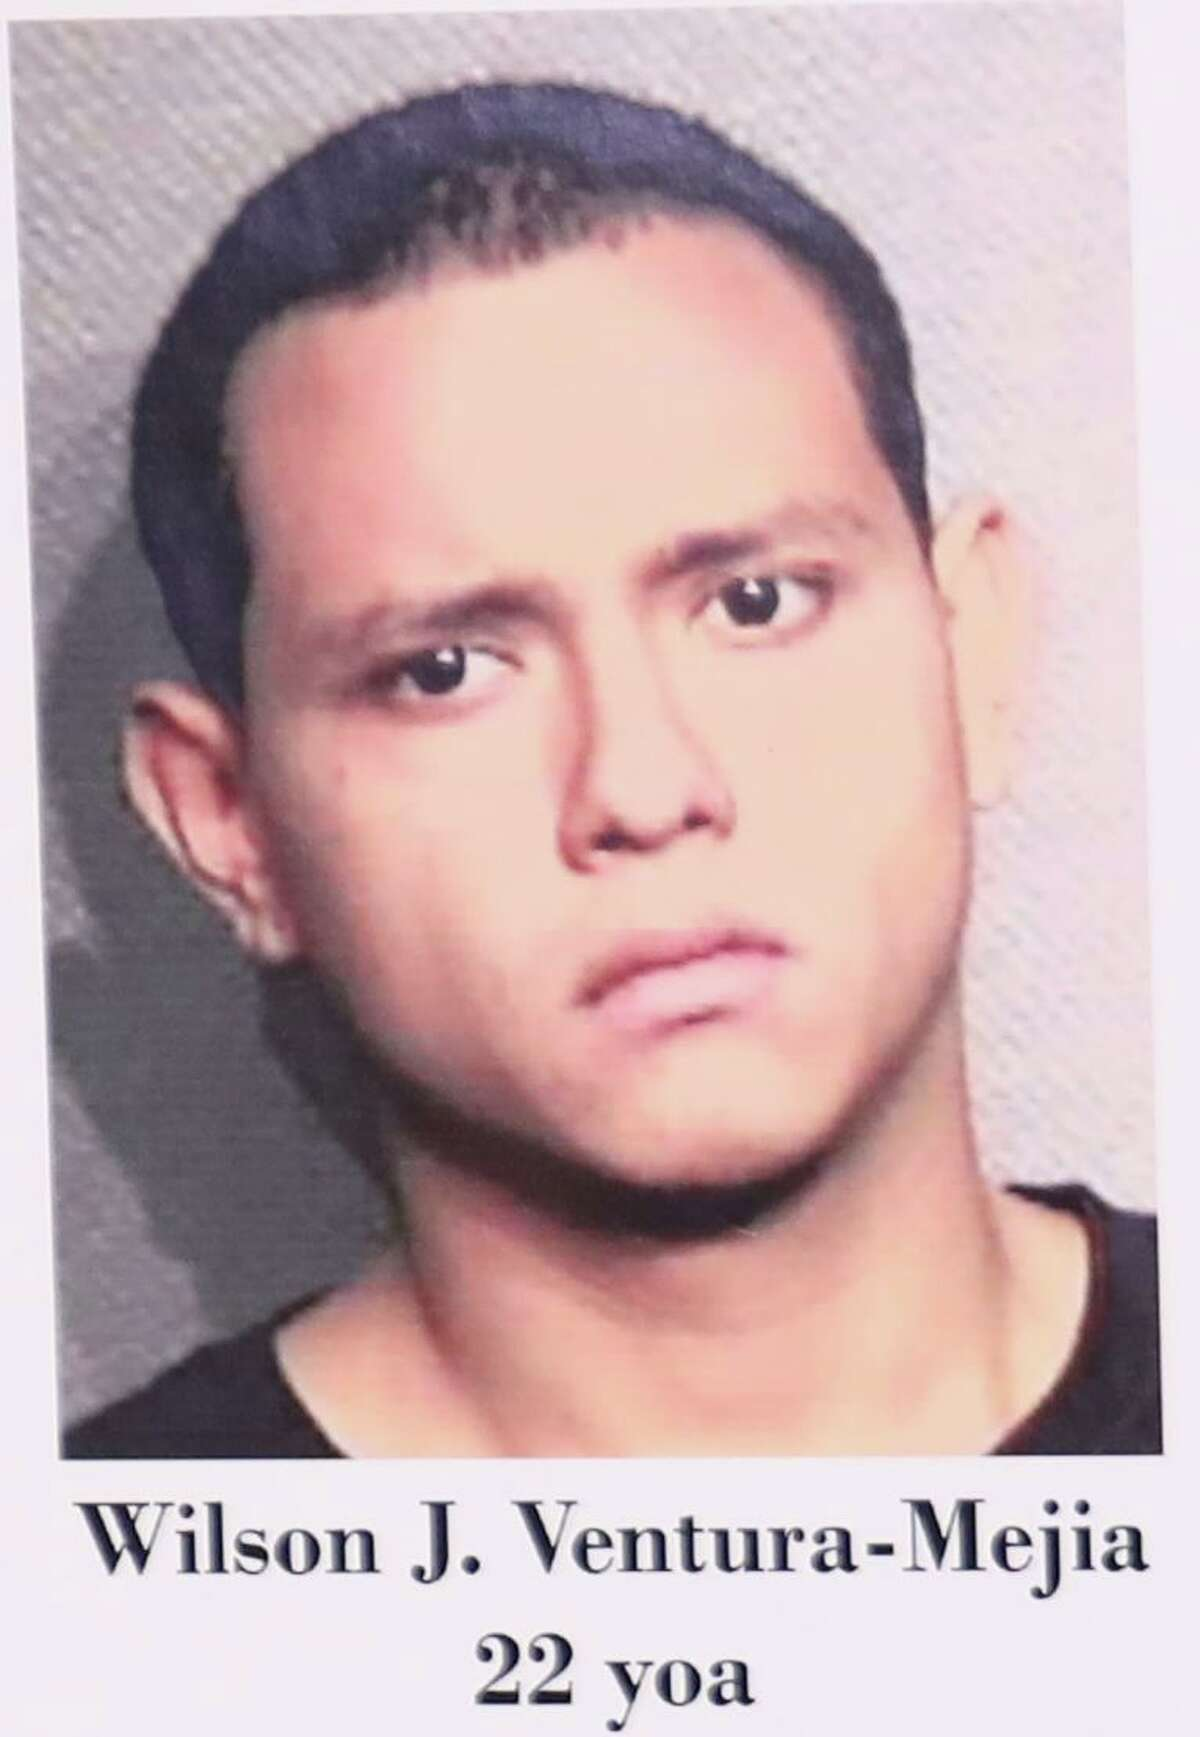 The arrest of MS-13 gang member Wilson J. Ventura-Mejia was announced Tuesday, Sept. 4, 2018, in Houston.